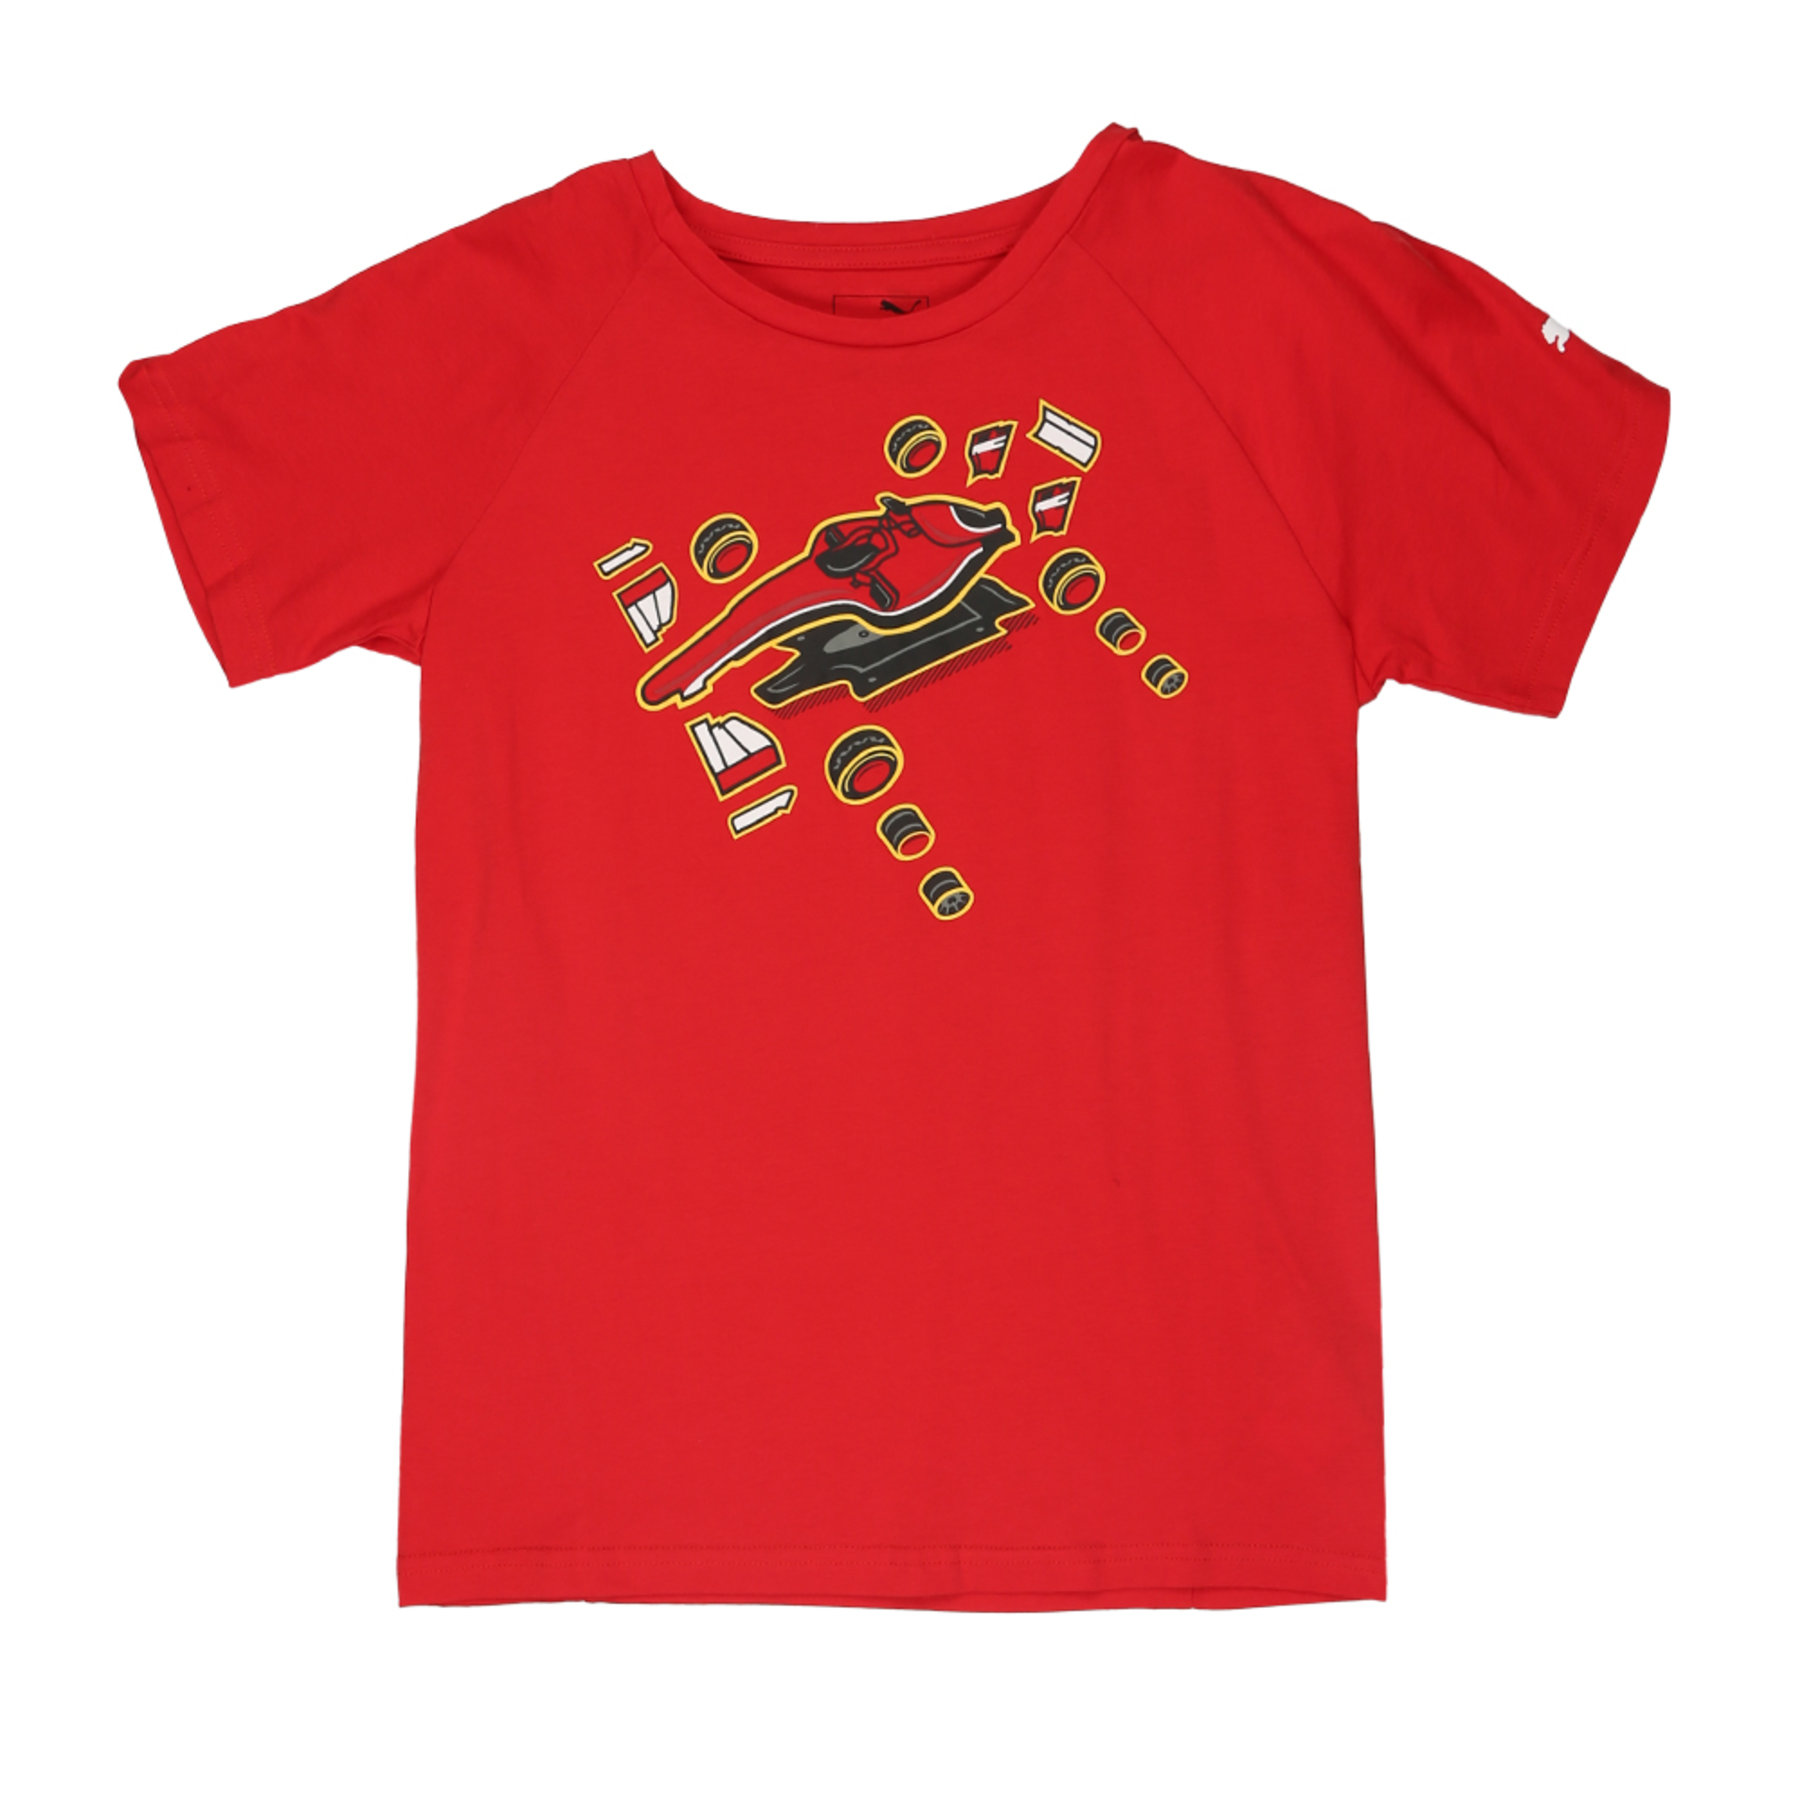 SF Kids Graphic Tee Rosso Cors